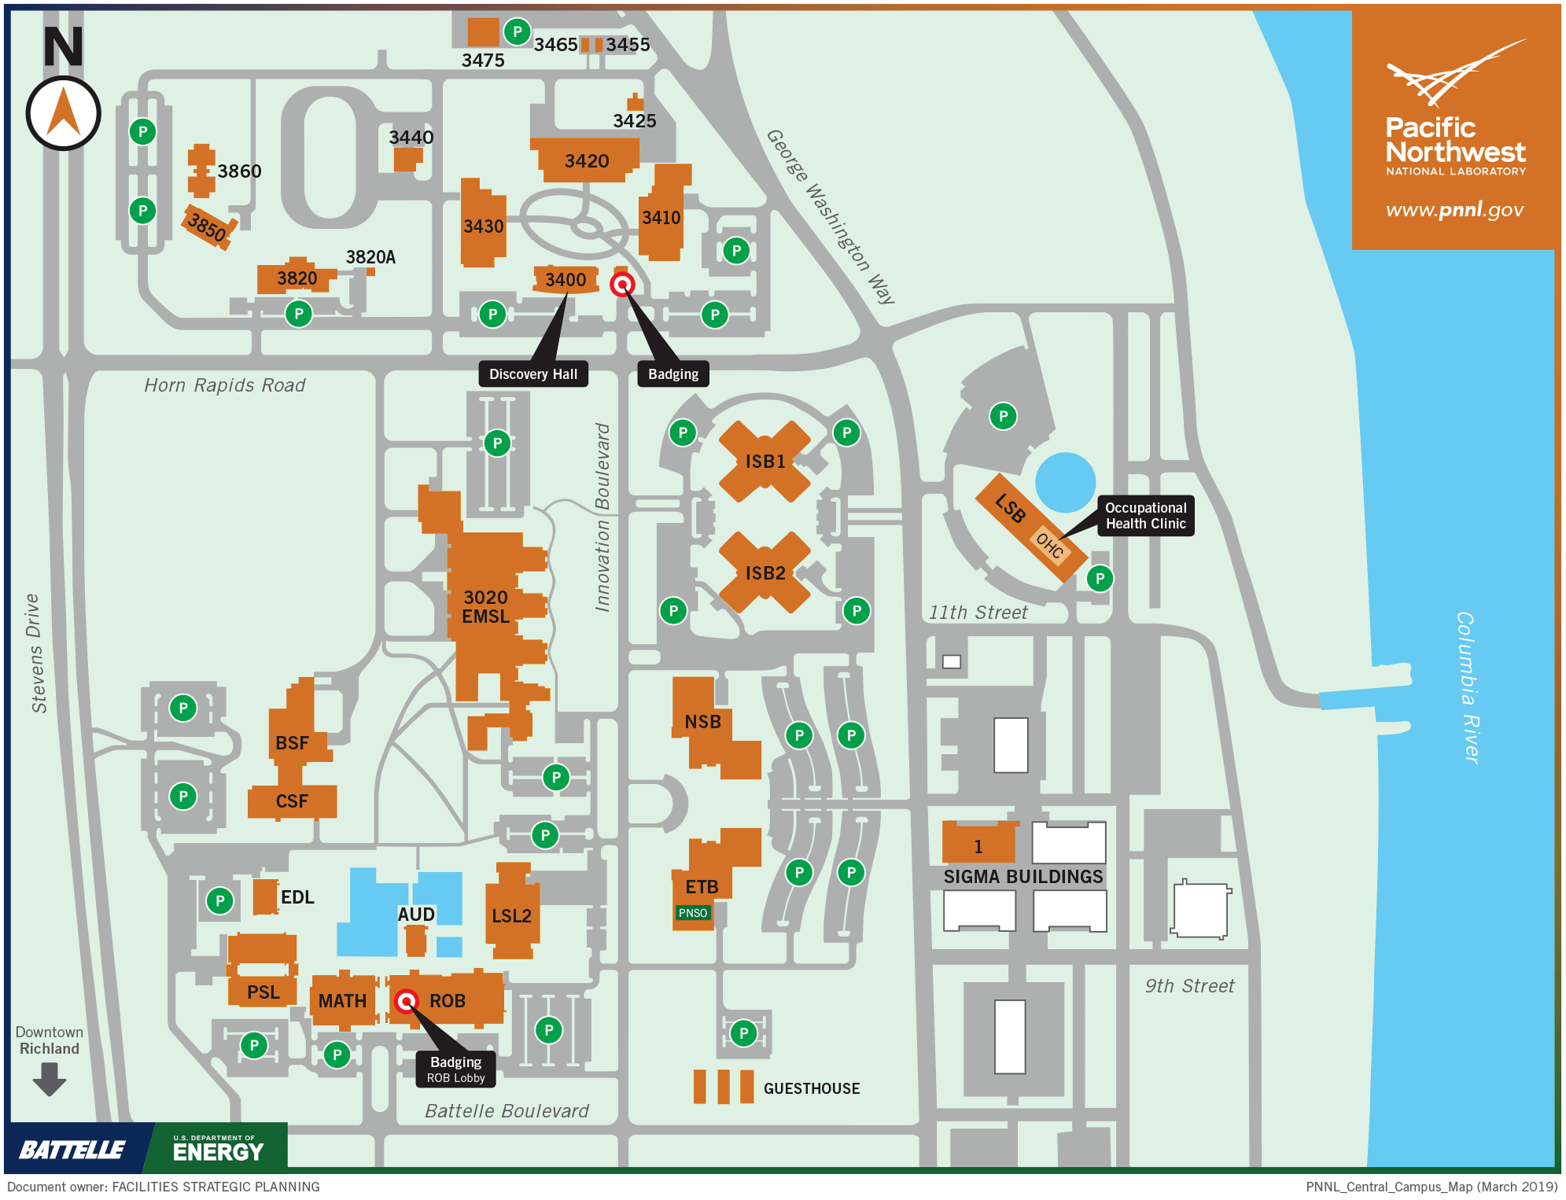 PNNL Central Campus Map Updated